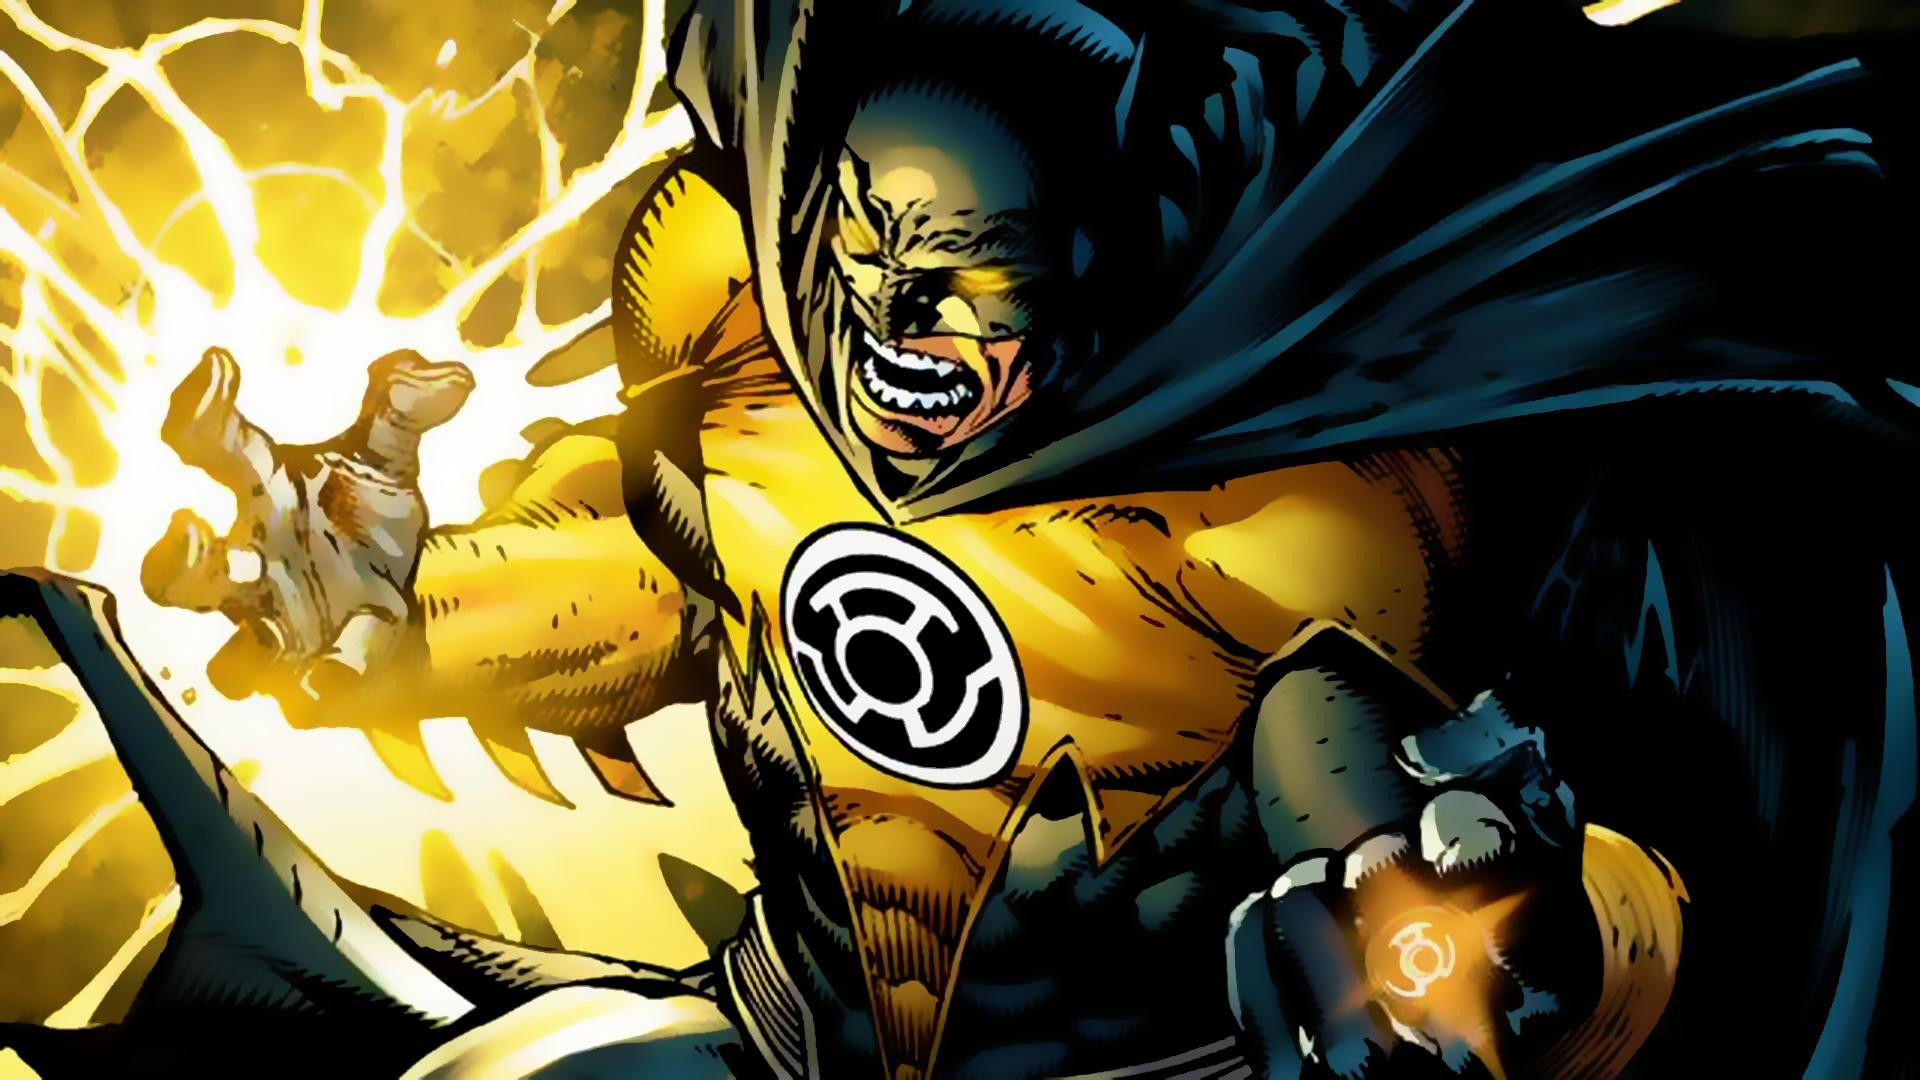 1920x1080 Batman Sinestro Corps in Forever Evil [] Need #iPhone #6S #Plus # Wallpaper/ #Background for #IPhone6SPlus? Follow iPhone 6S Plus 3Wallpape…